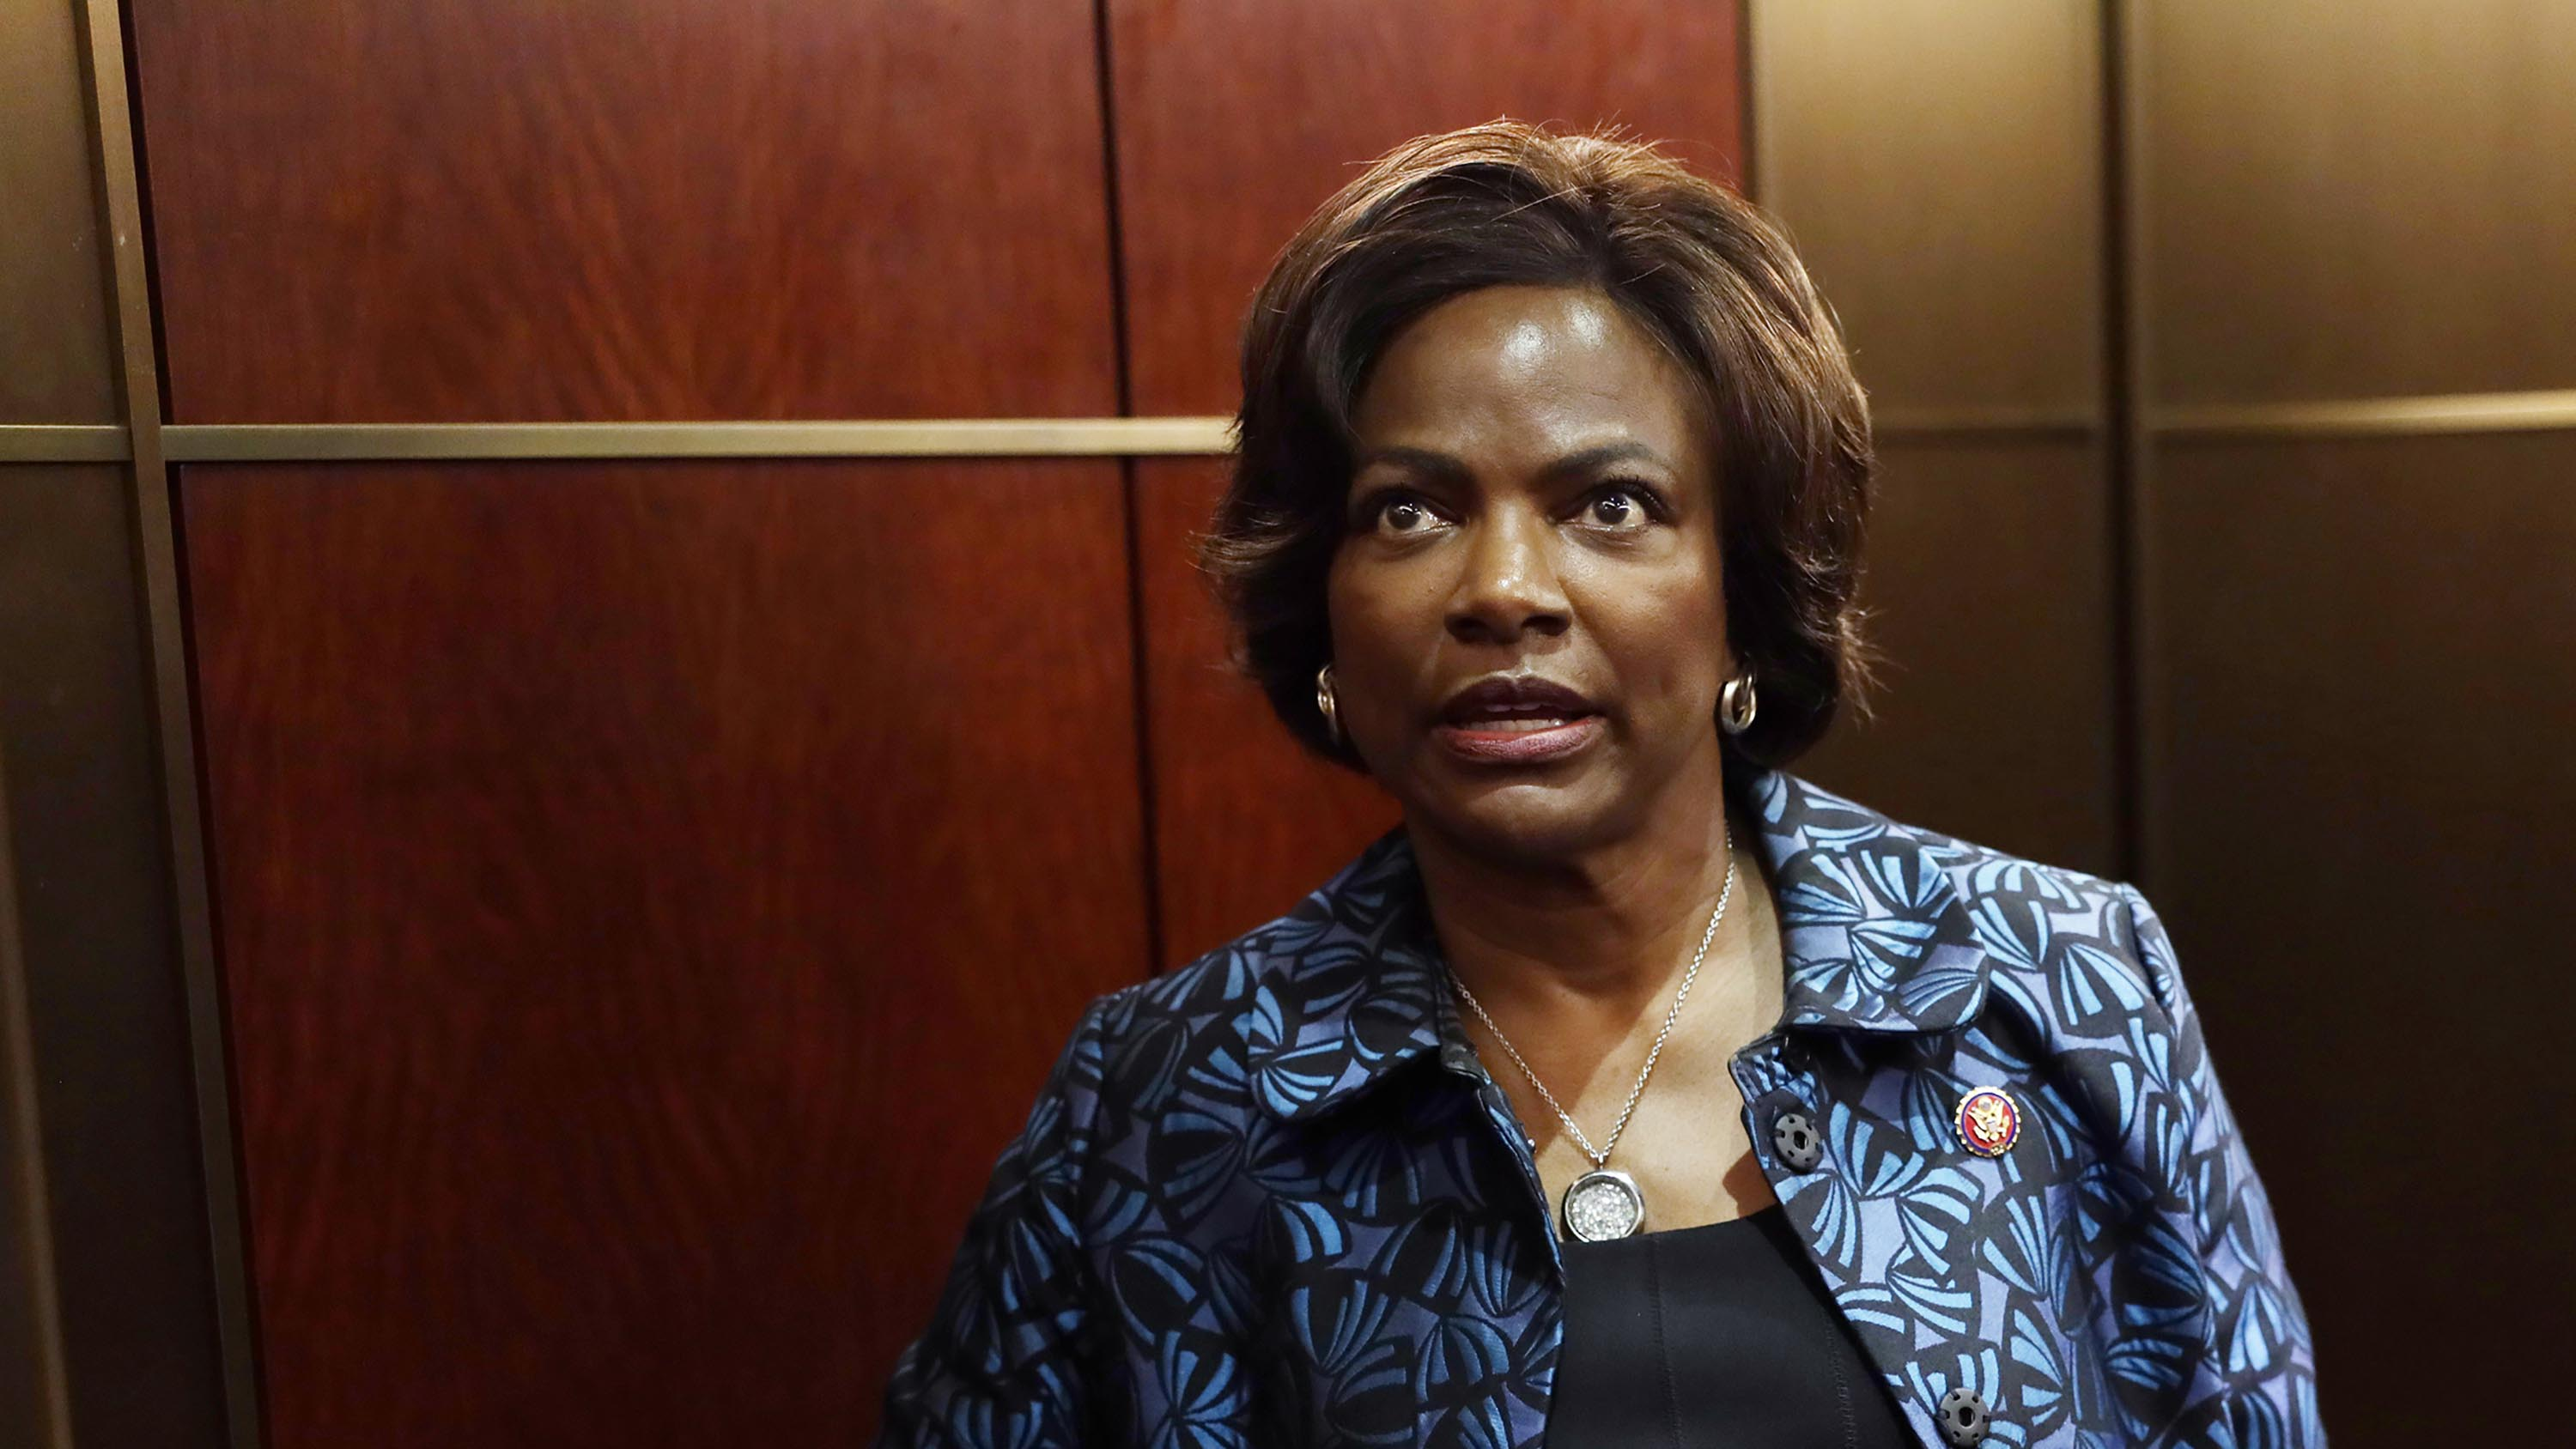 Rep. Val Demings speaks to members of the media after a closed session before the House Intelligence, Foreign Affairs and Oversight committees October 17, 2019.